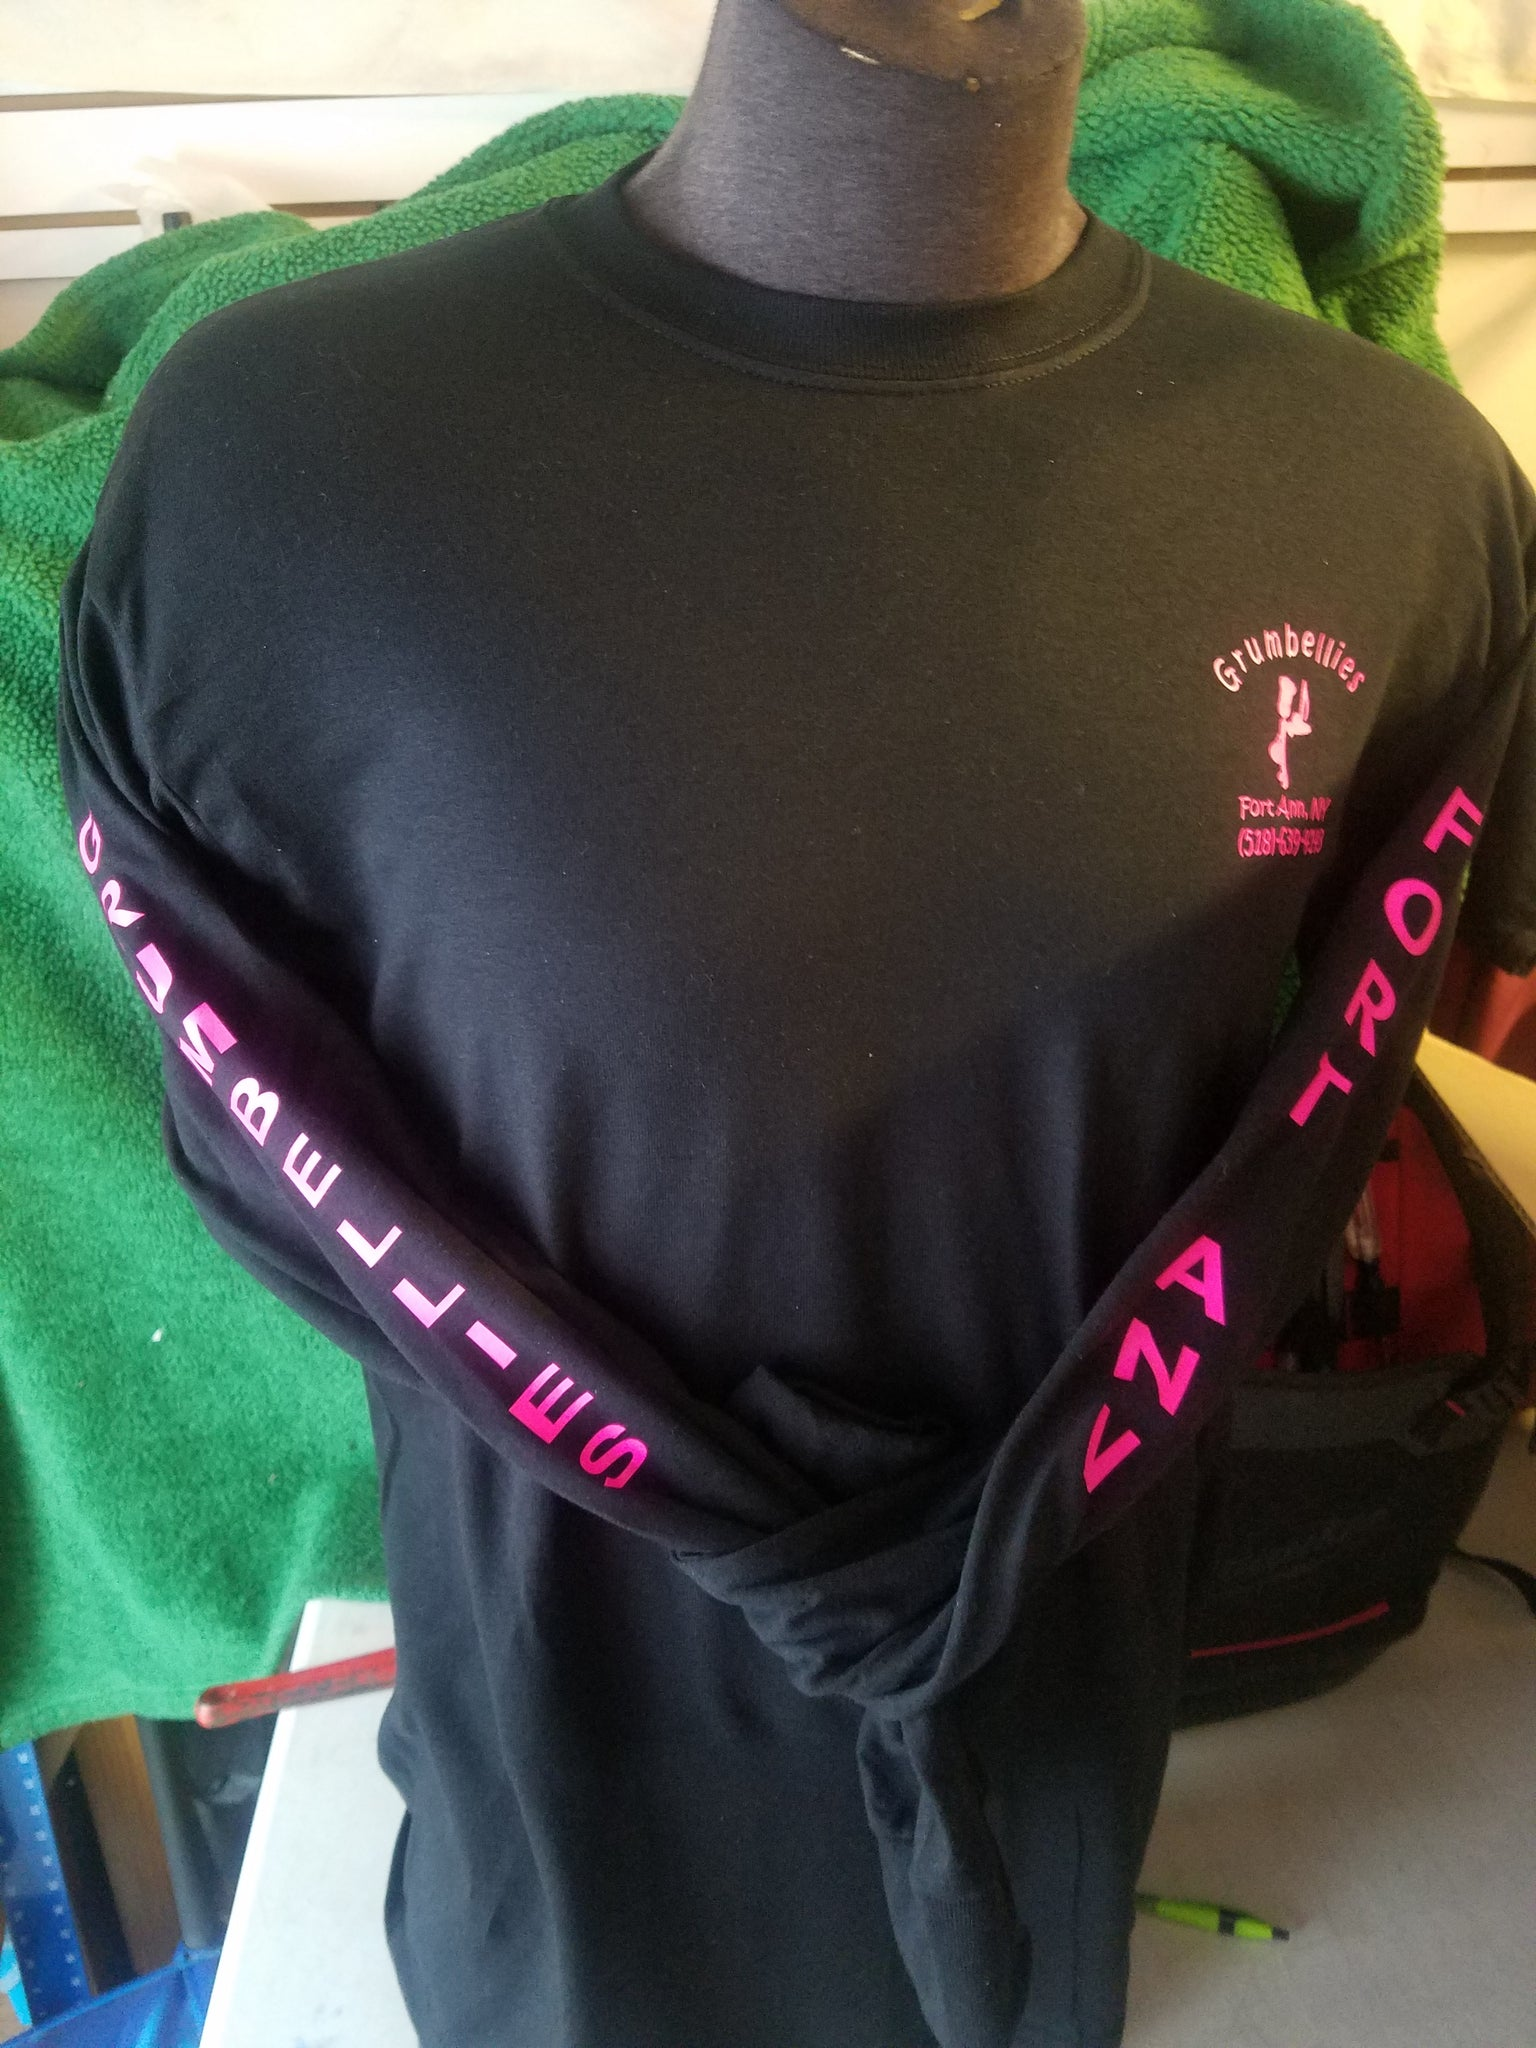 Copy of Grumbellies Black Long Sleeve with Hot Pink Lettering